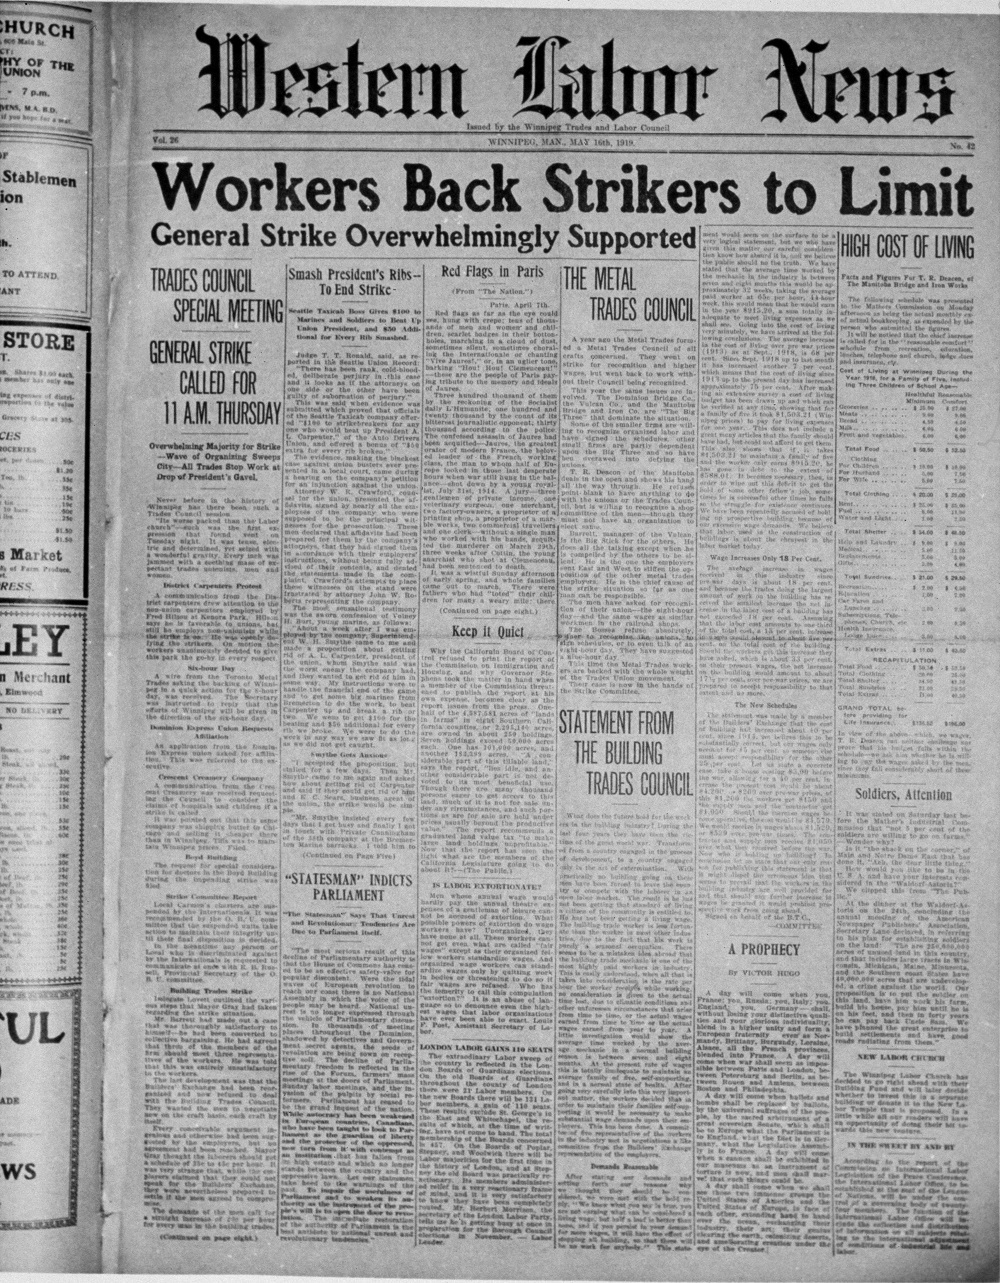 The Western Labor News announced the results of the strike vote. (Archives of Manitoba)